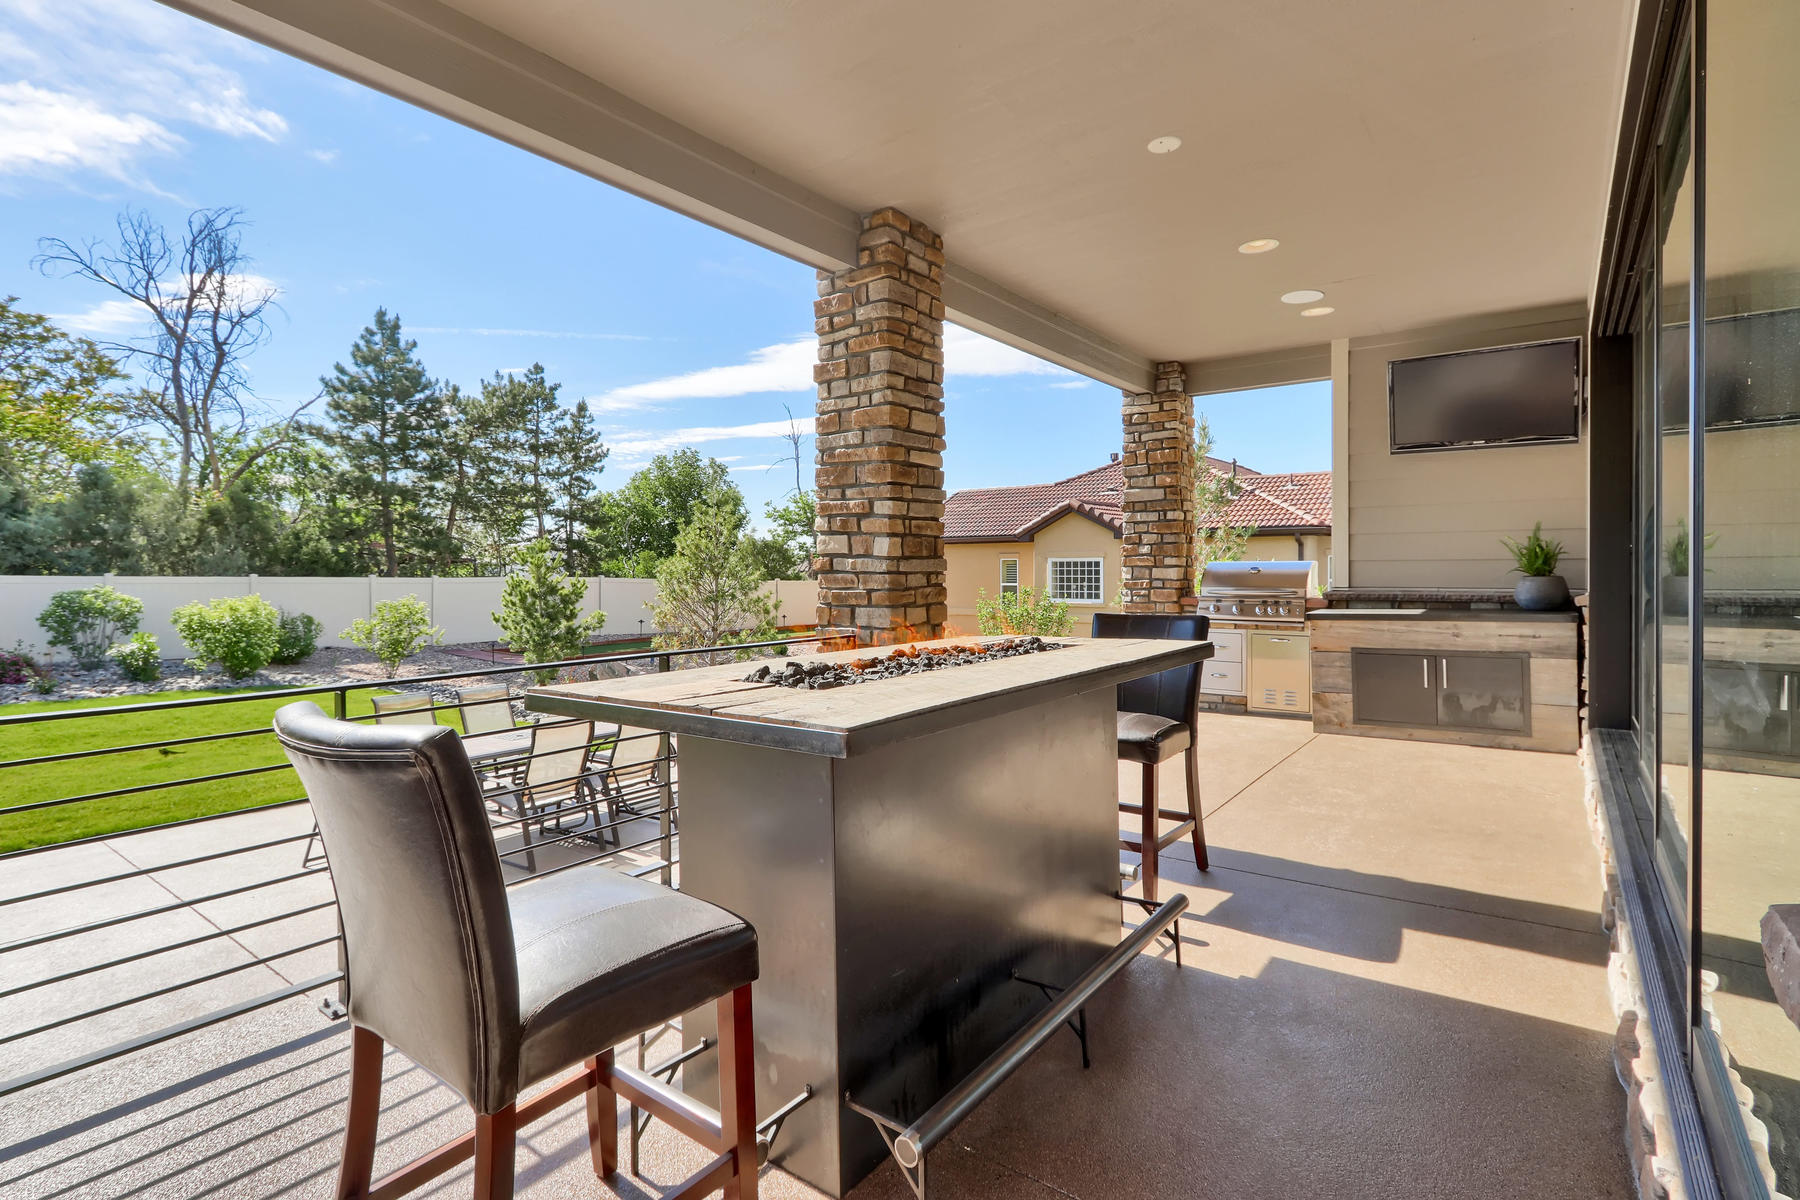 14611 W 57th Dr Arvada CO-035-005-Patio-MLS_Size.jpg